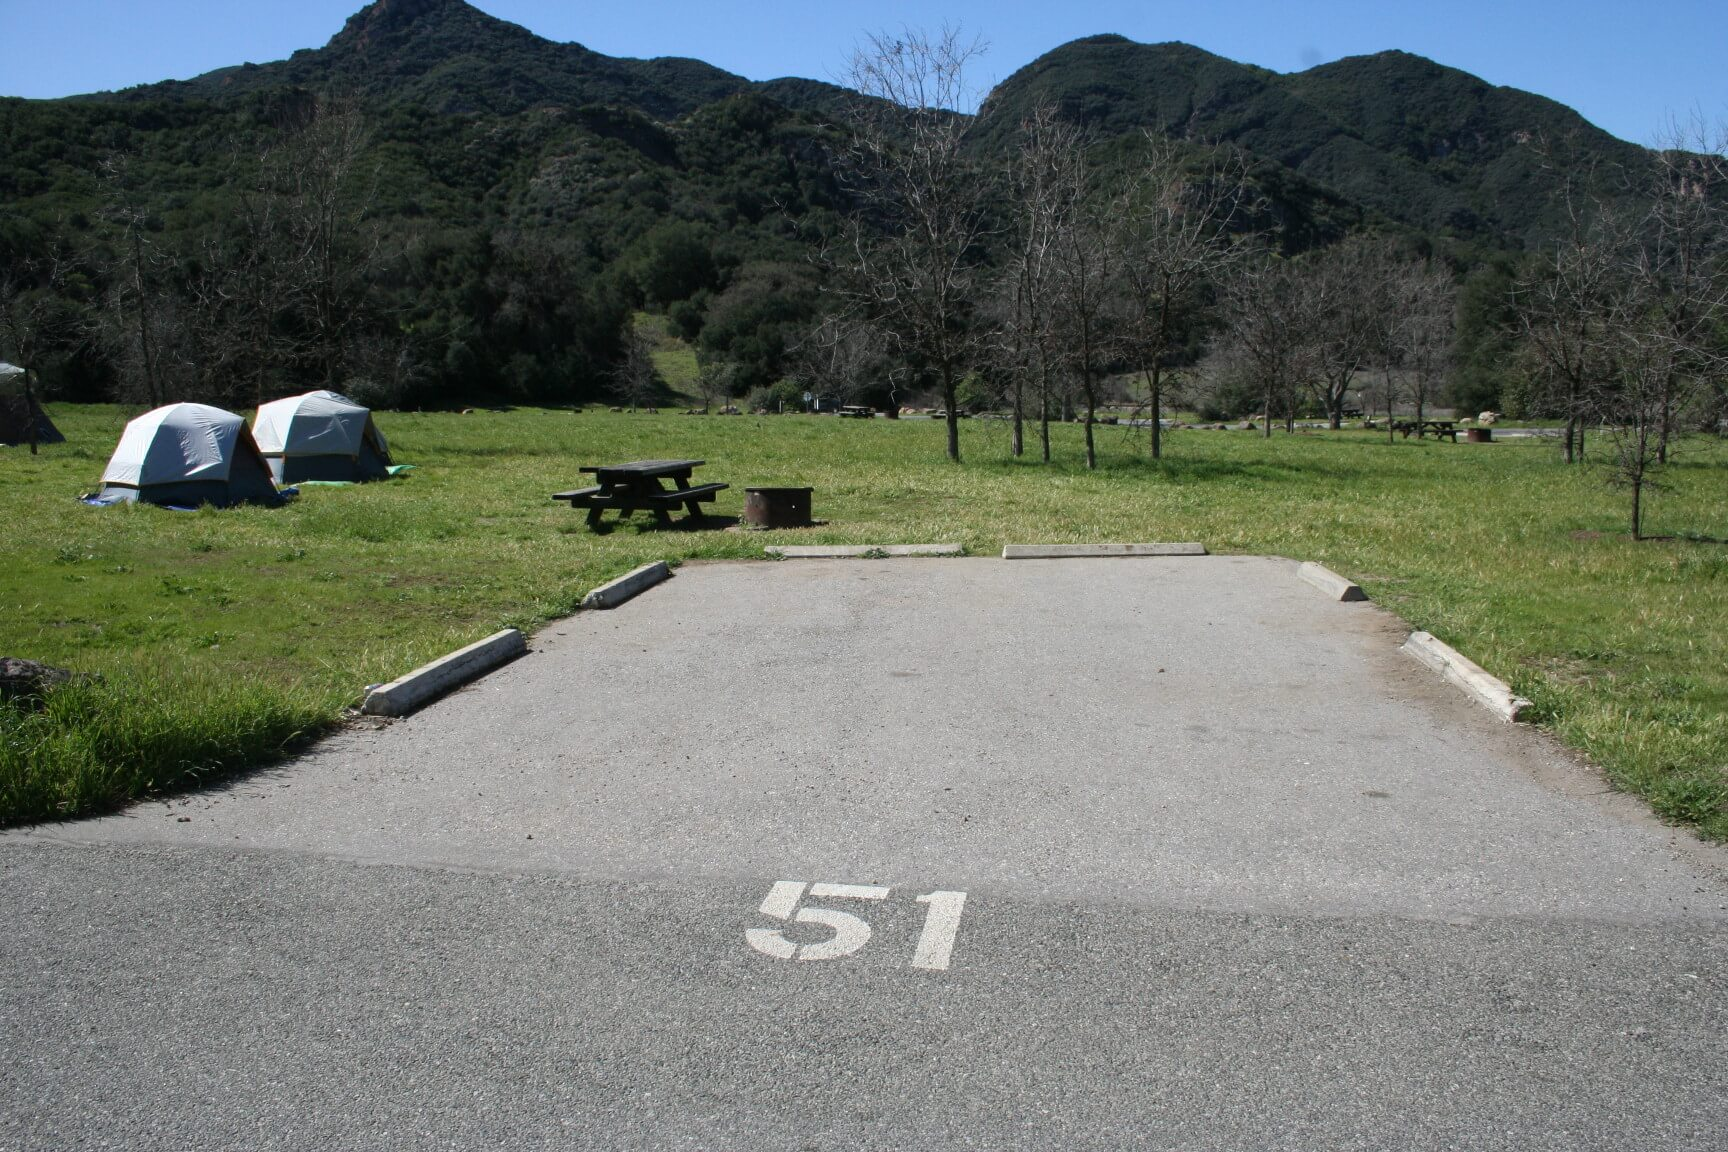 Leo Carrillo & Malibu Creek Campgrounds Are Now Open For Camping - Malibu Creek Site 51 Before Fire